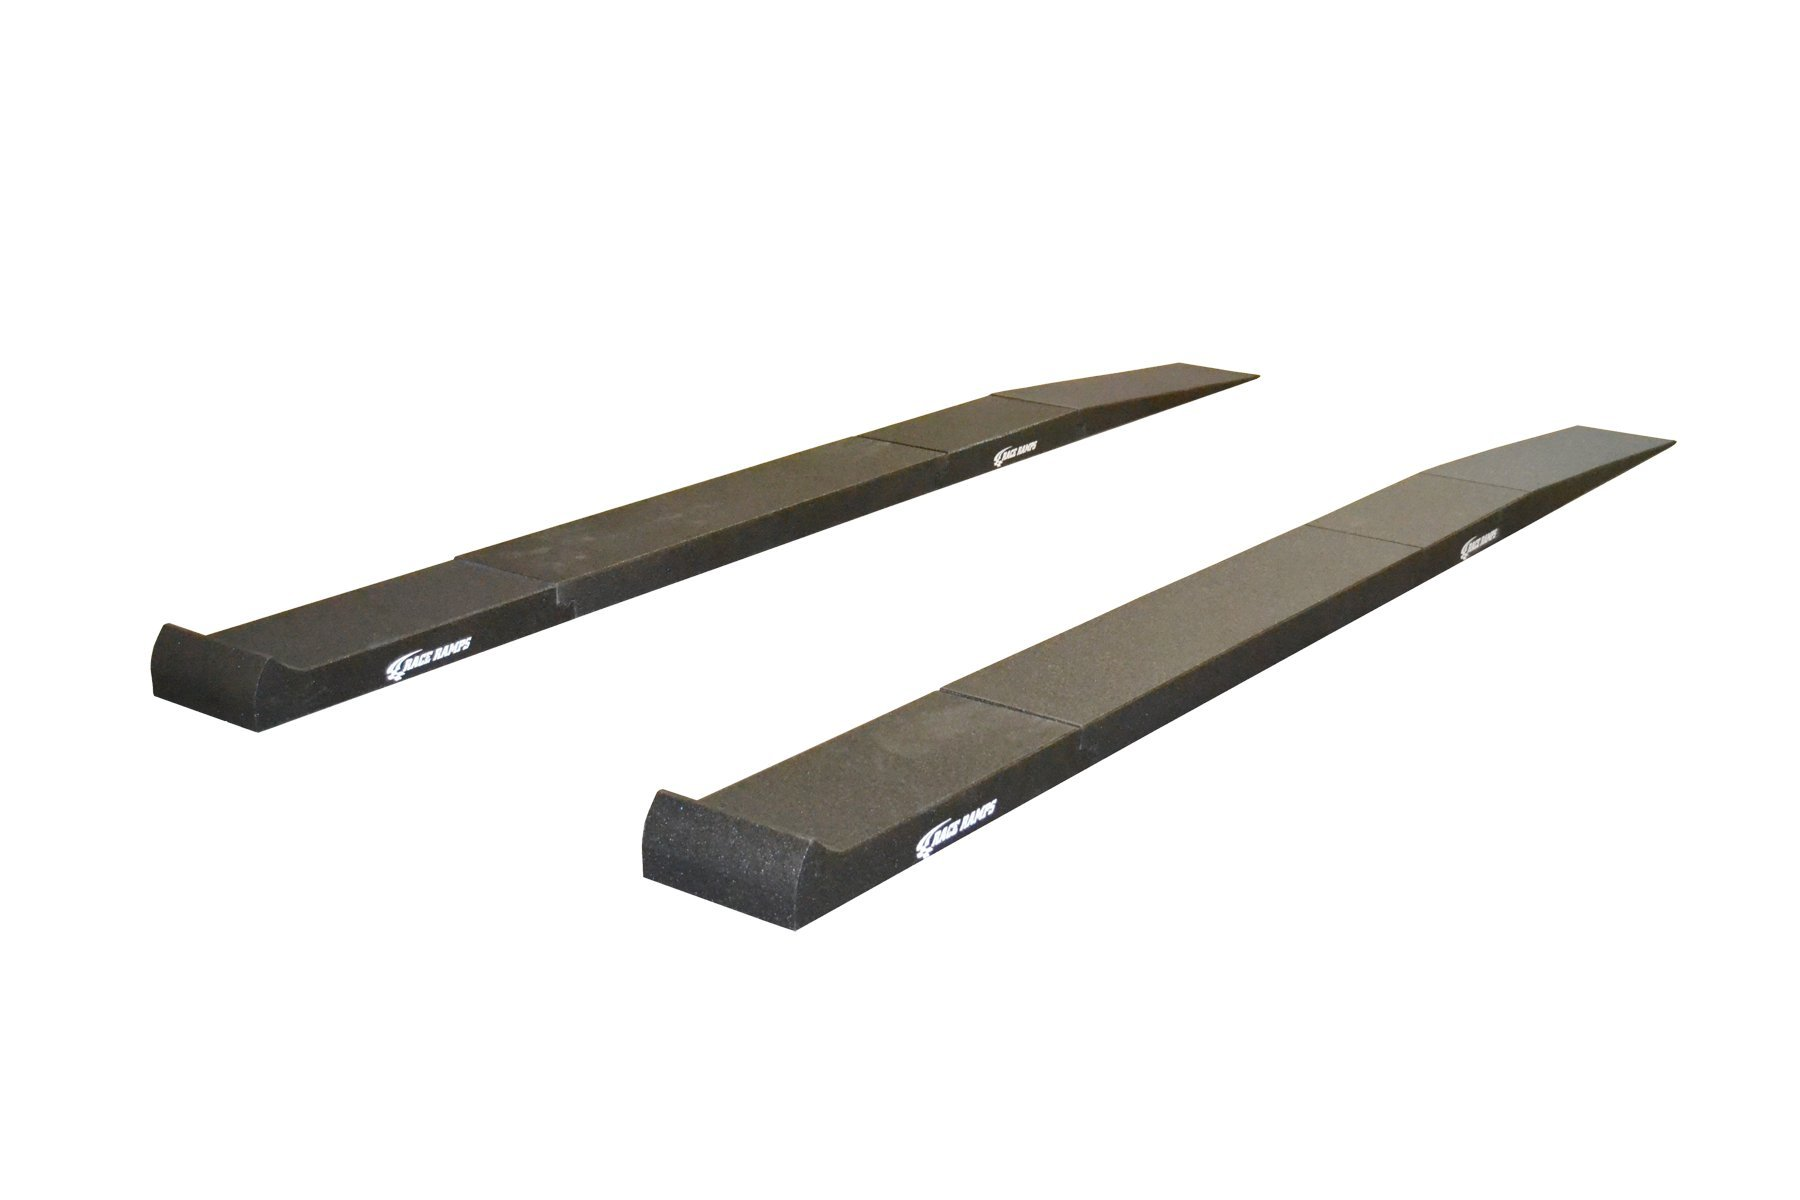 Race Ramps RR-CLR-4 Car Lift Ramps